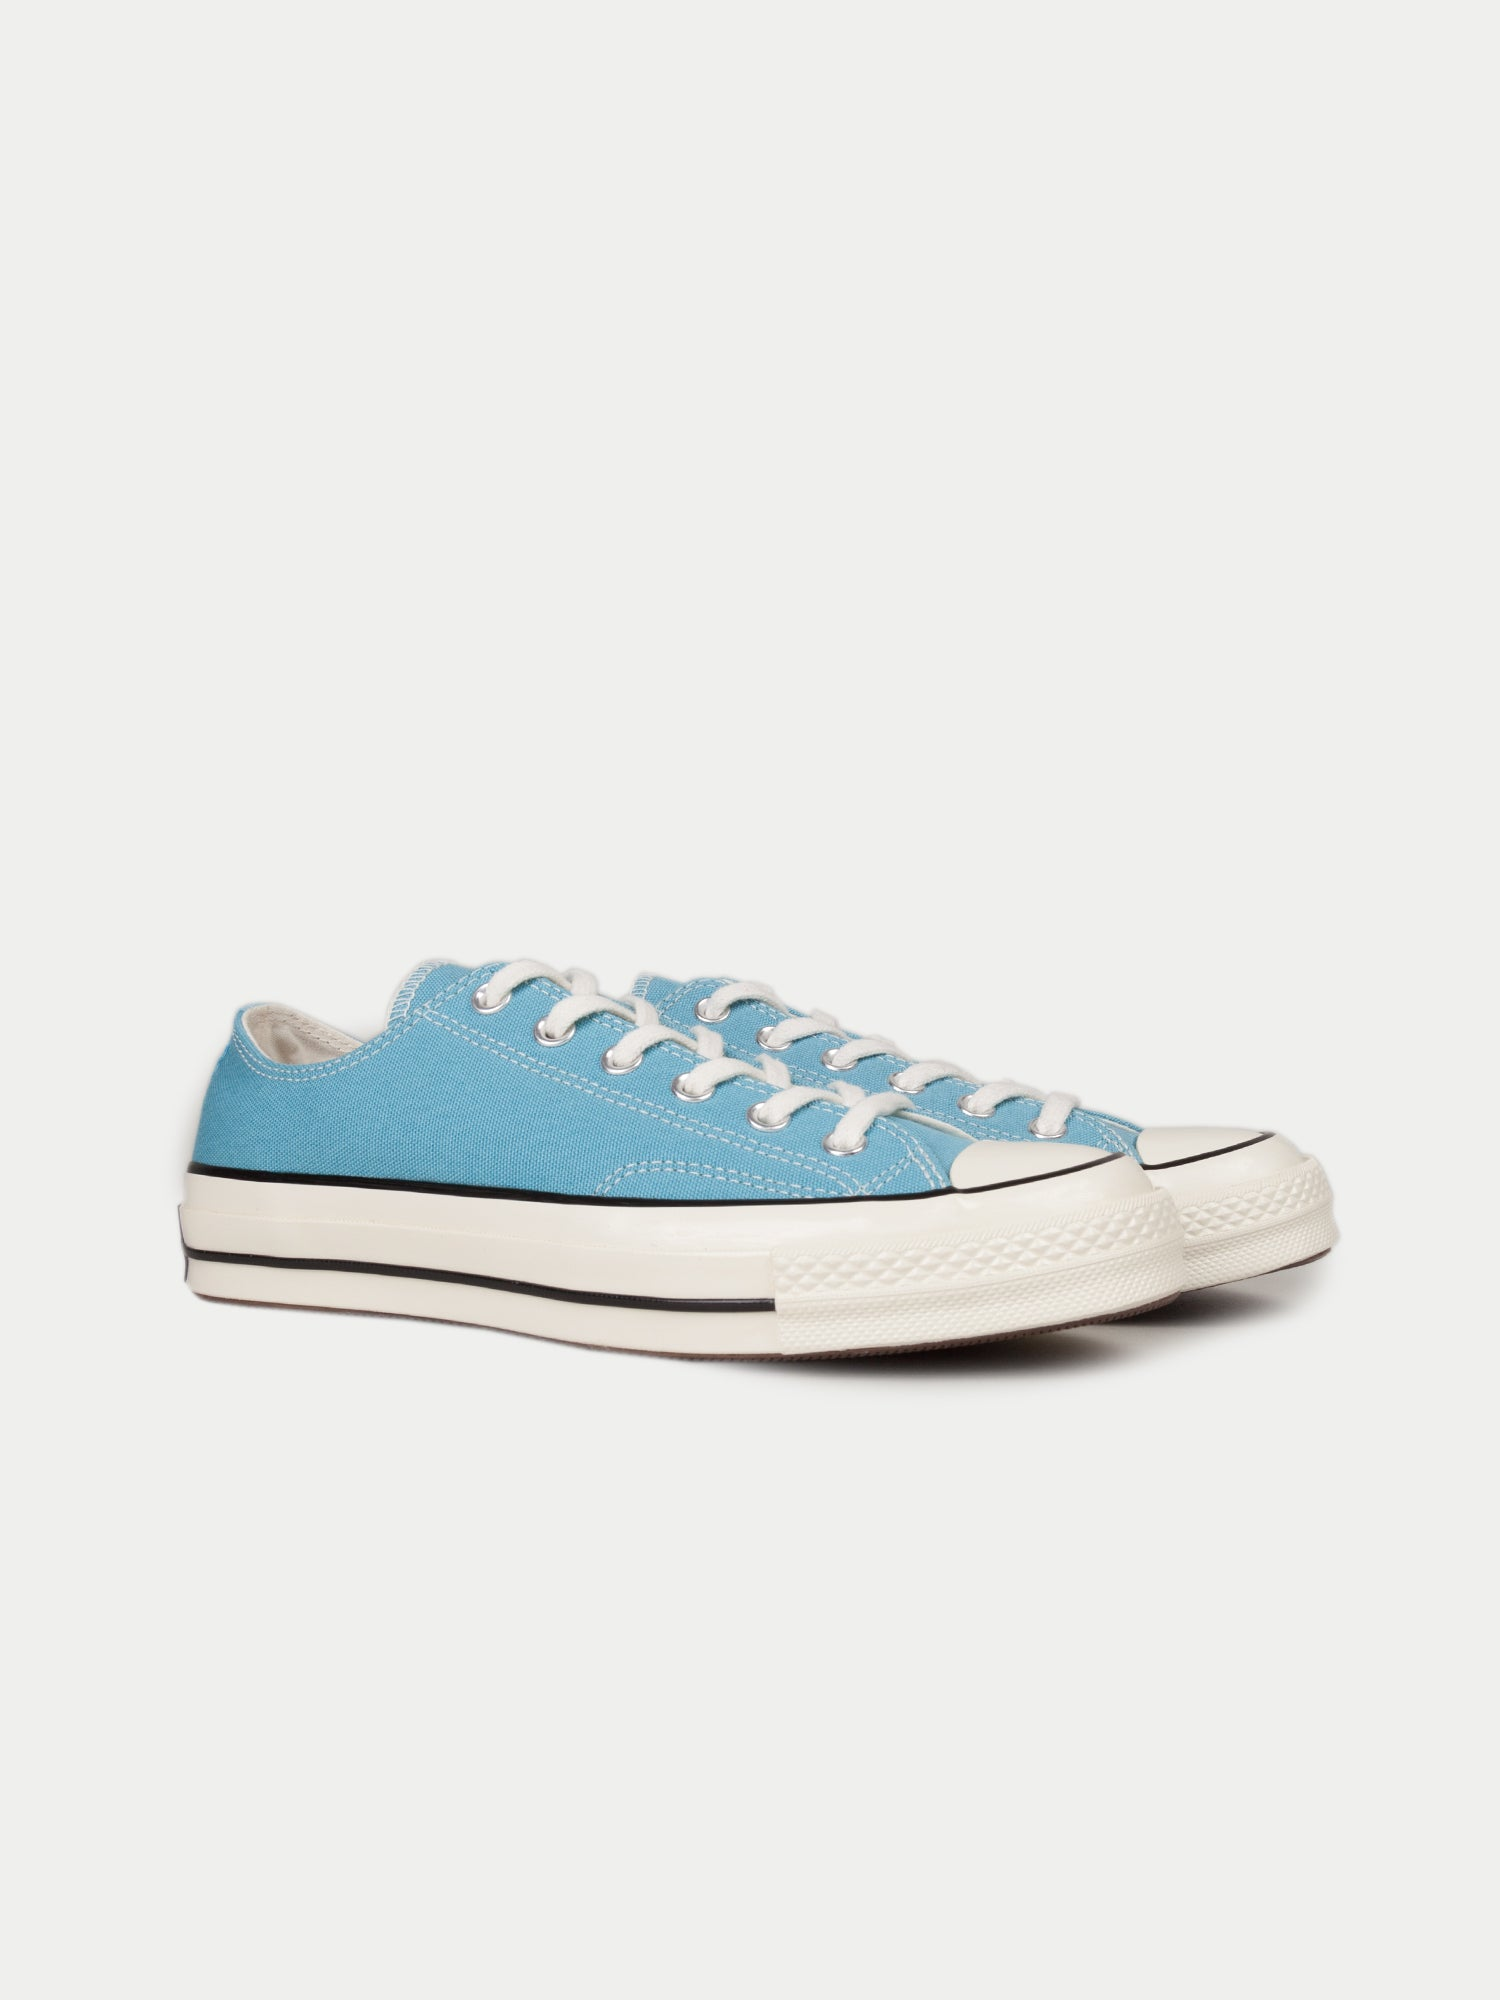 aae7ae55f51172 Converse-All-Star-Chuck- 70-Ox- Shoreline-Blue.jpg v 1533811736